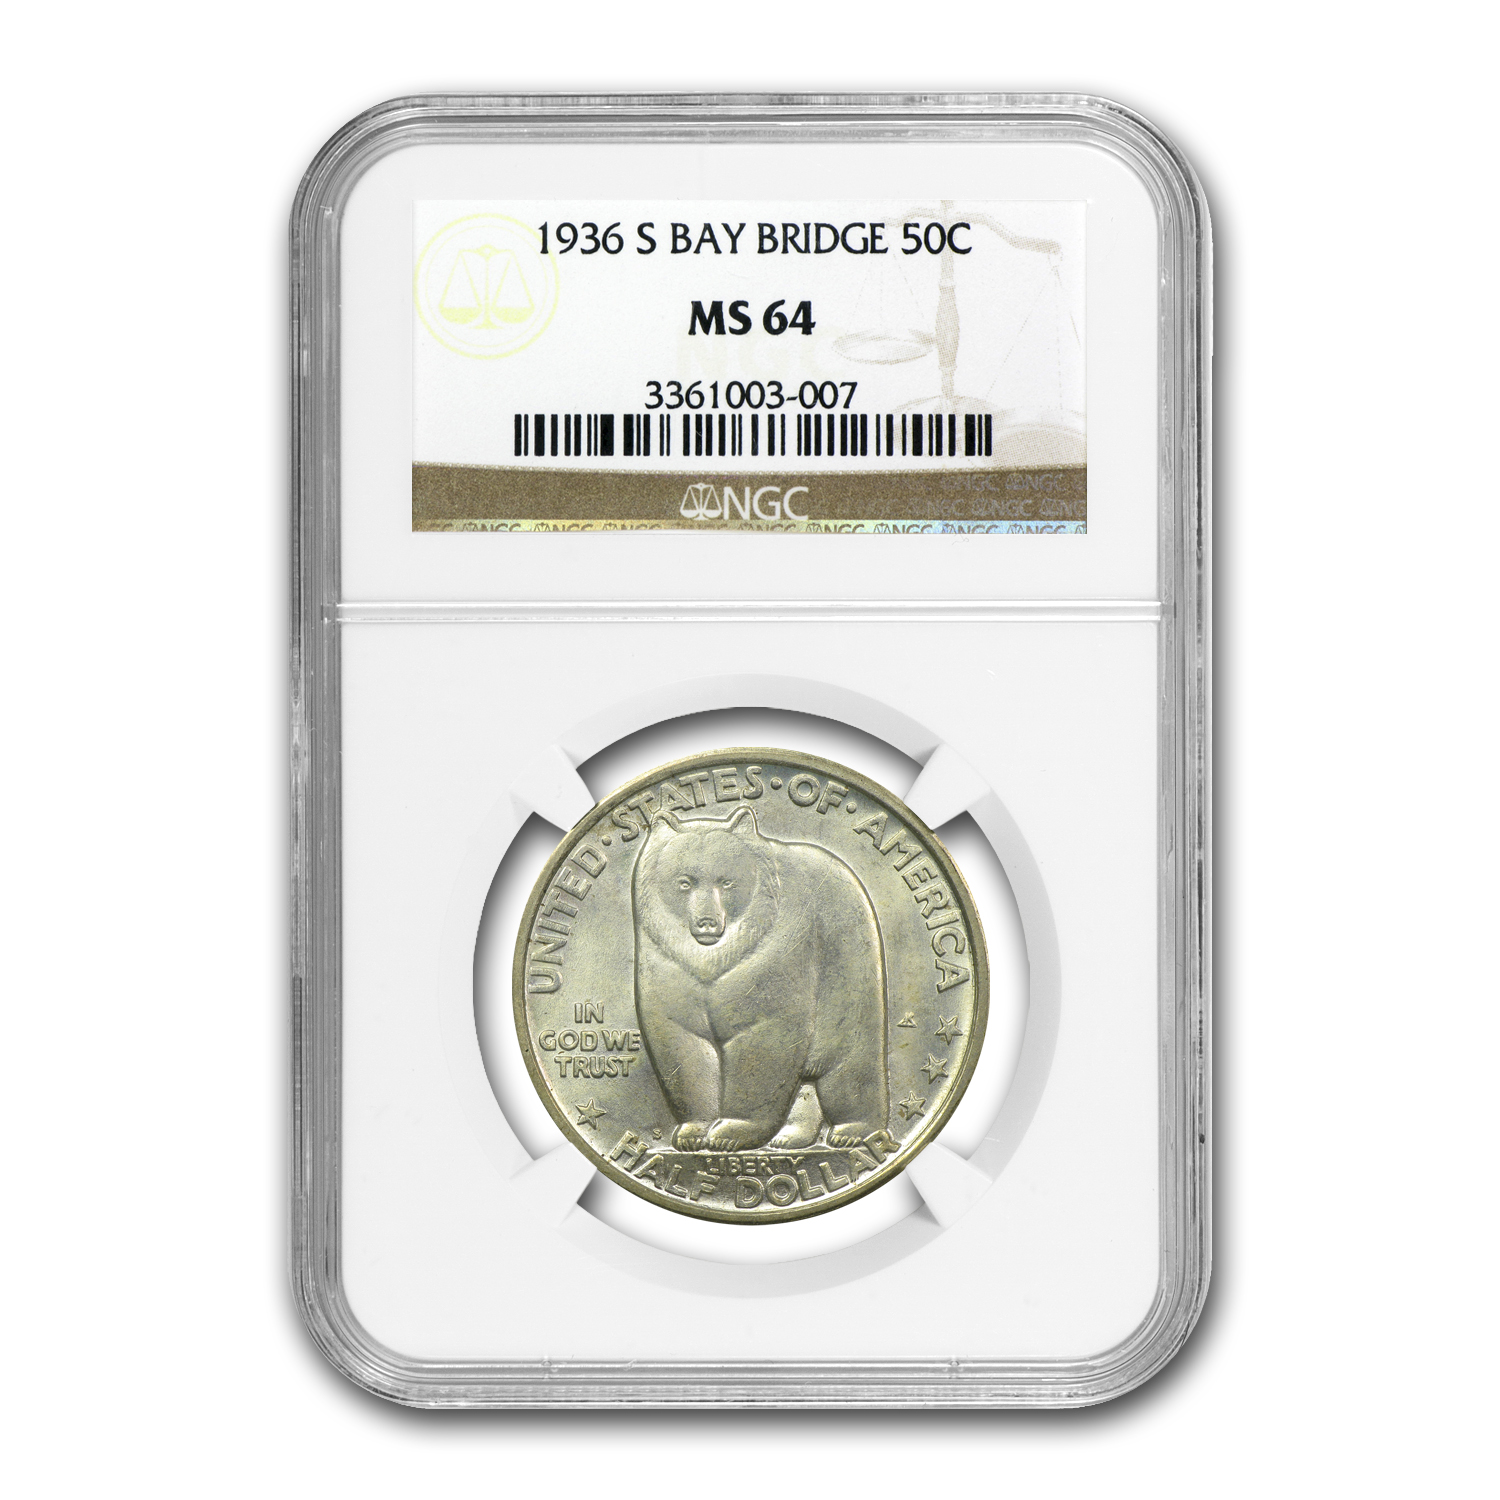 1936-S Bay Bridge MS-64 NGC